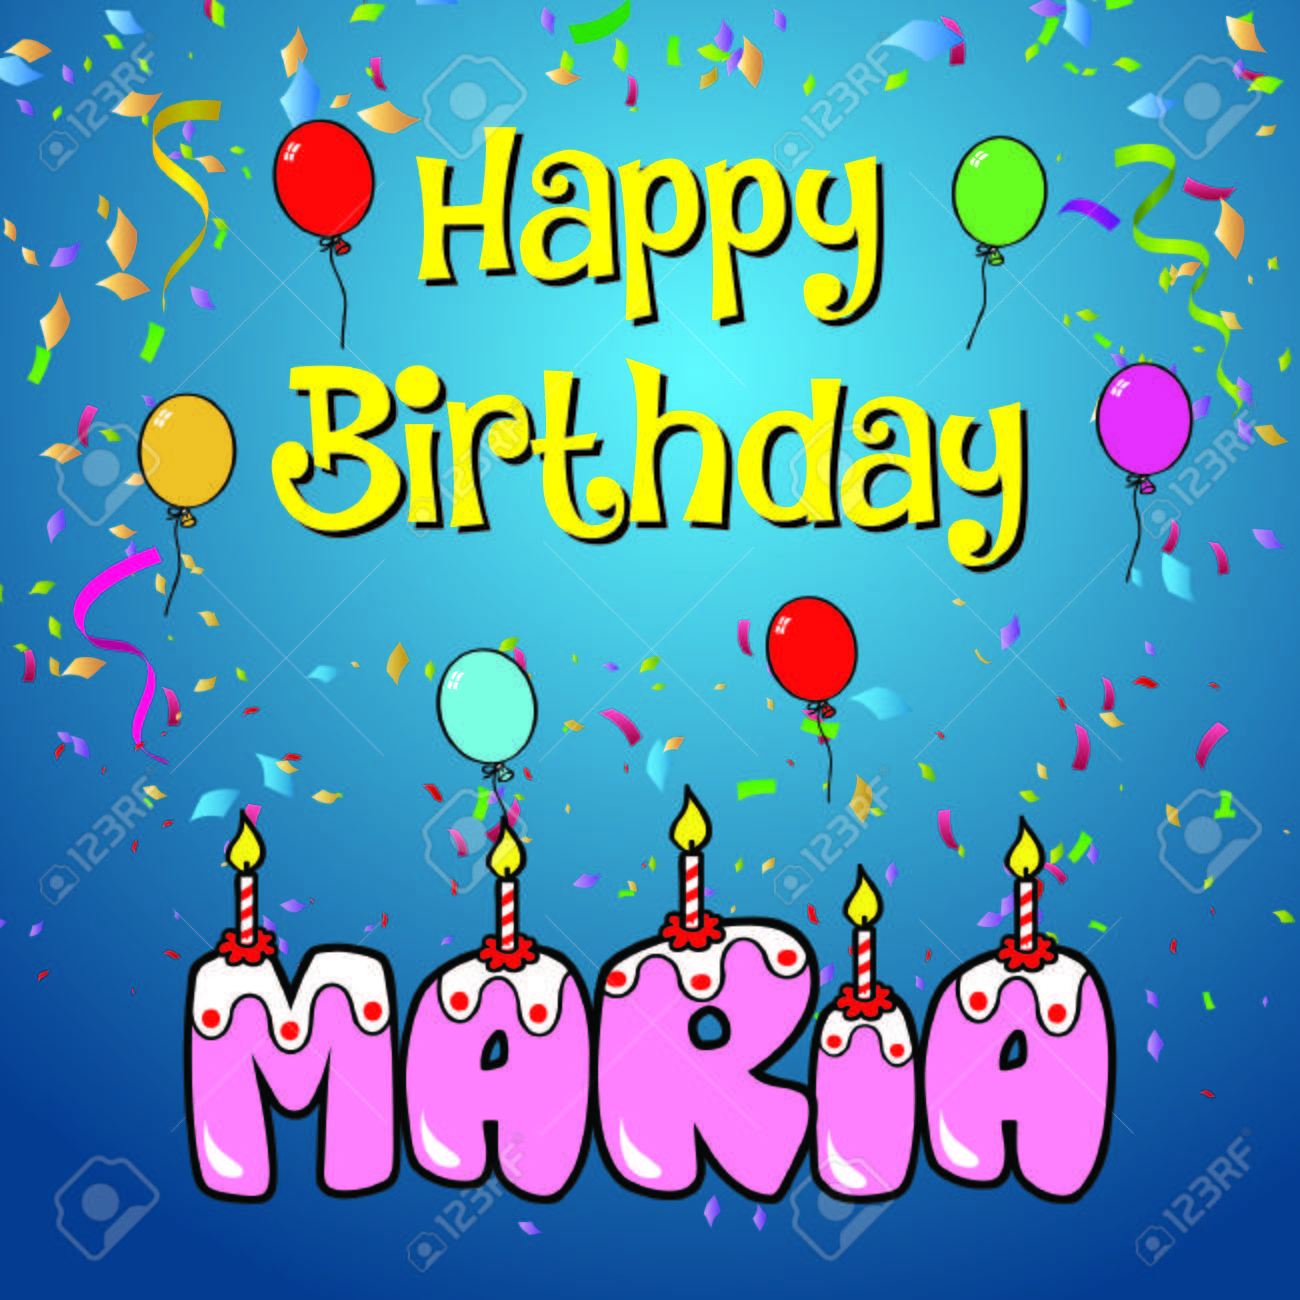 happy birthday mari ; 76484821-happy-birthday-maria